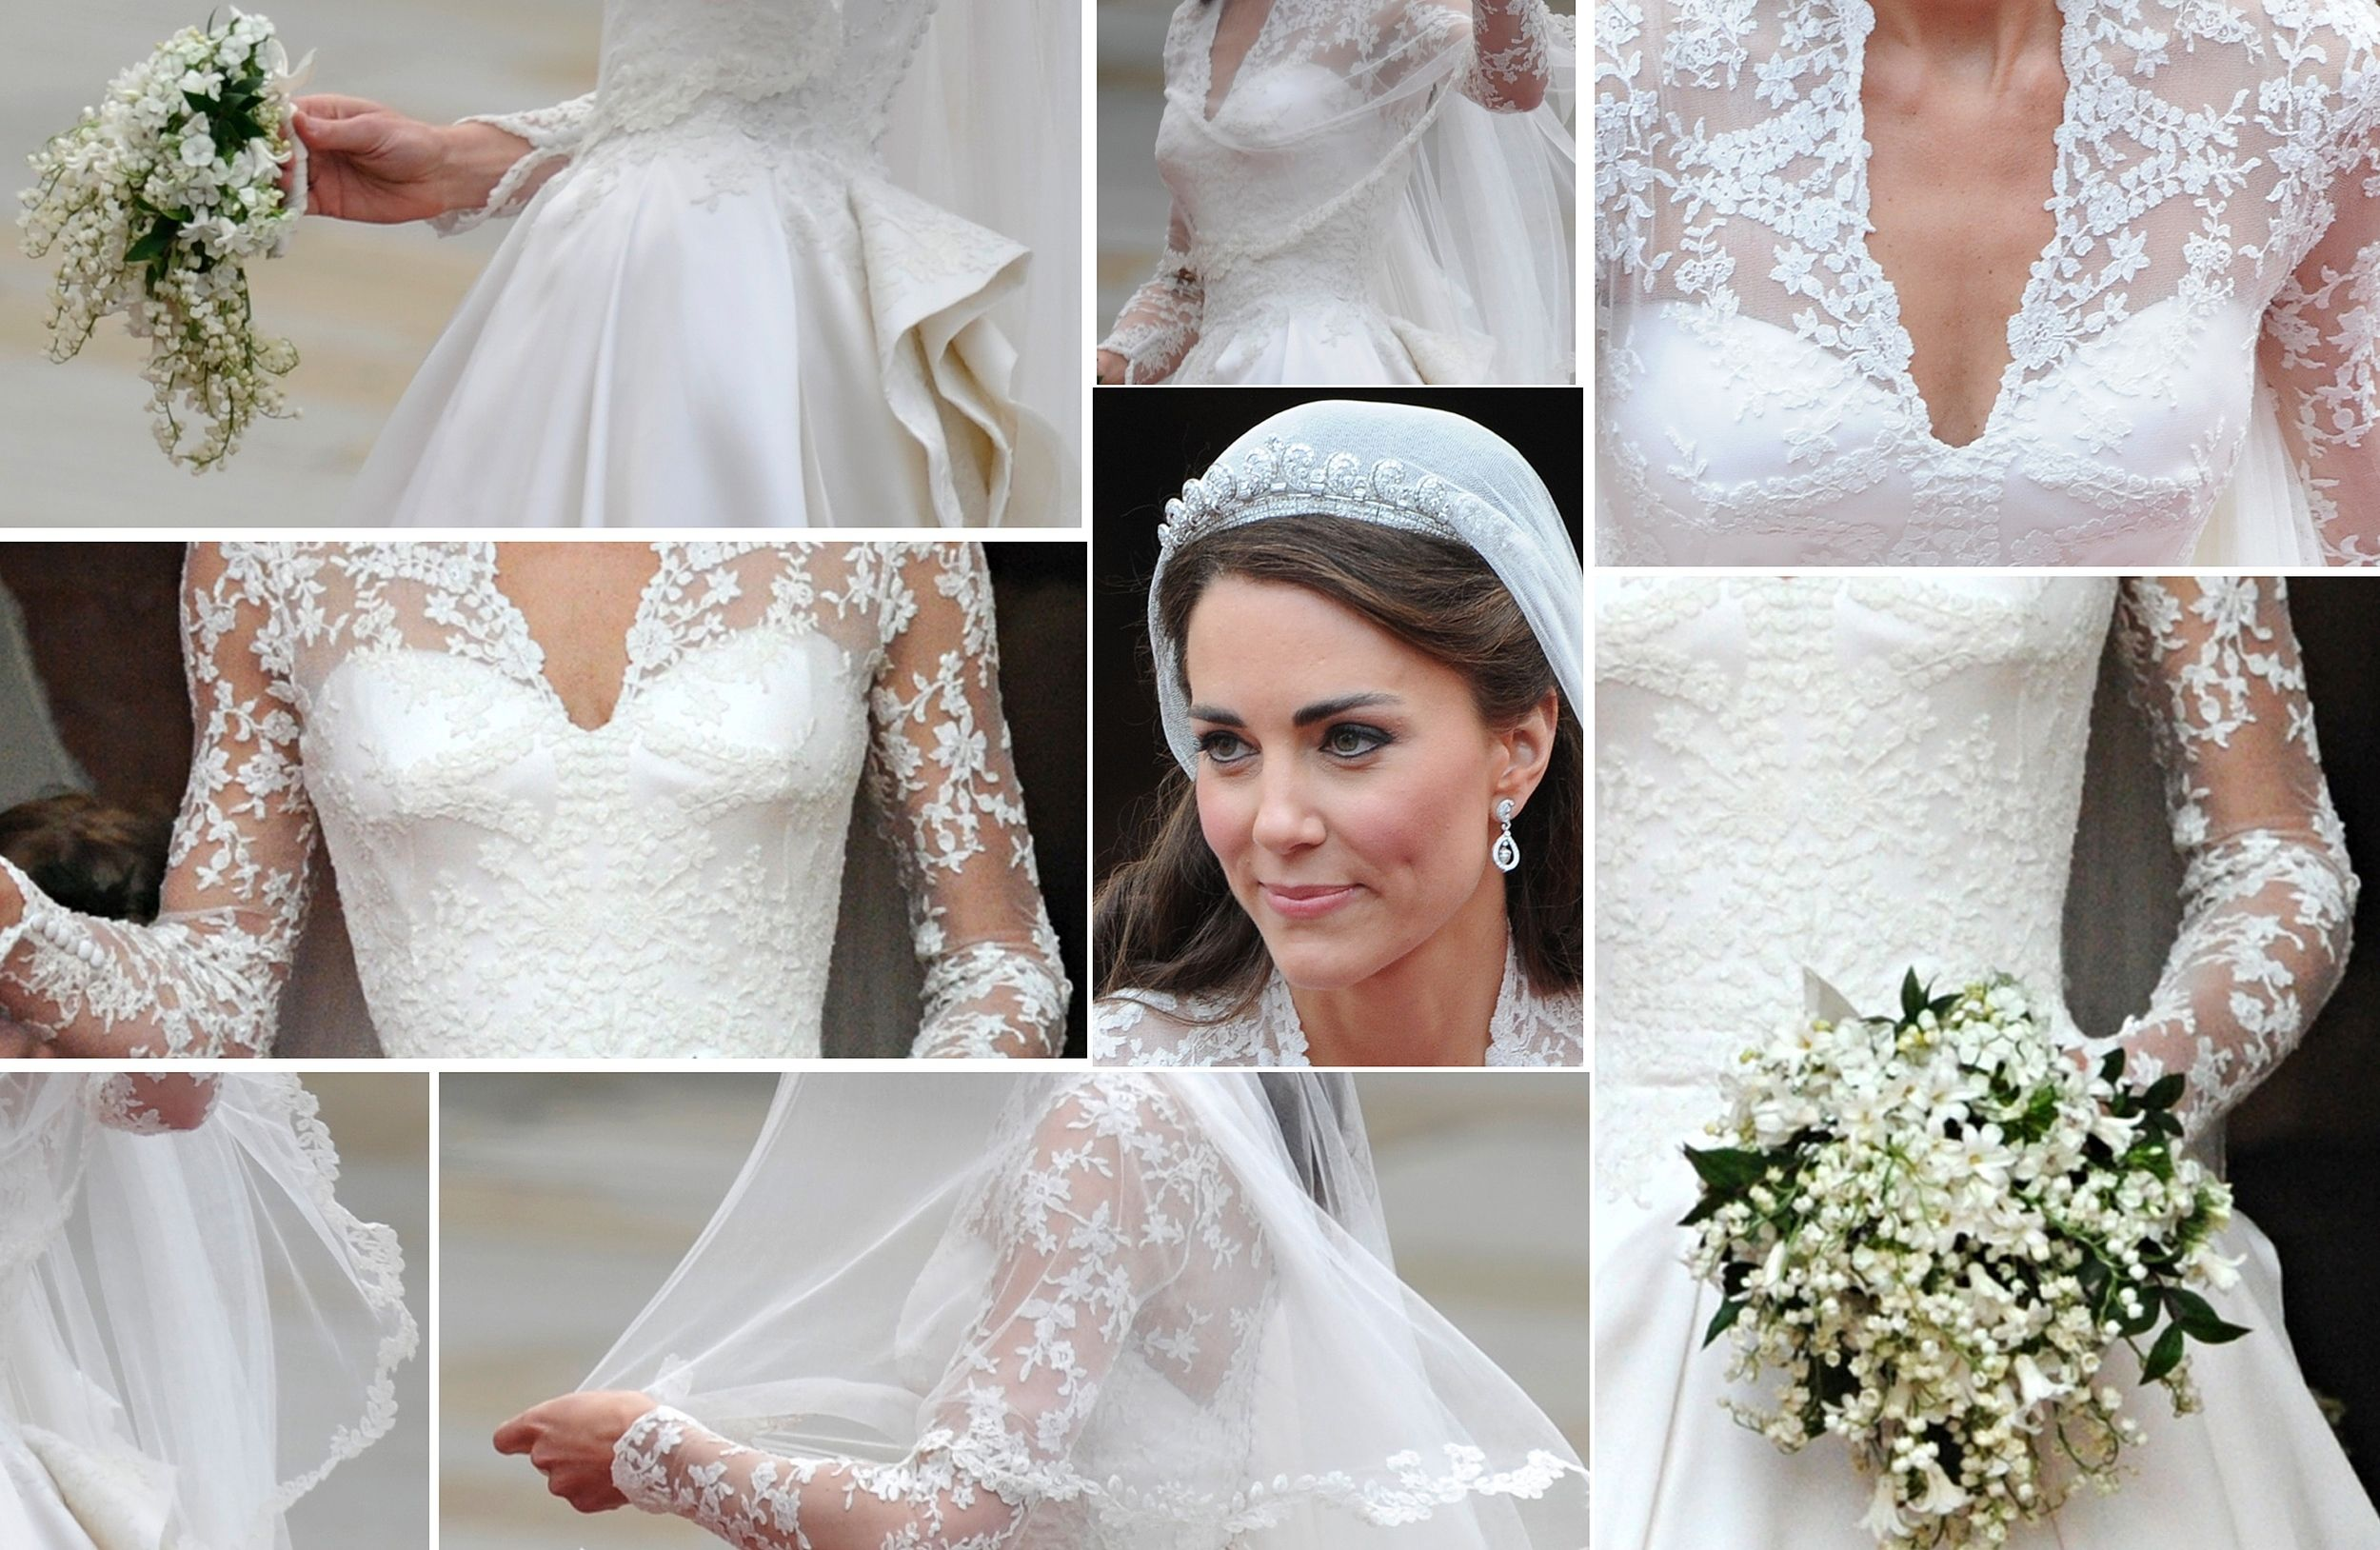 Why Meghan Markle And Kate Middleton S Wedding Invitations Differ In One Significant Way Kate Middleton Wedding Dress Kate Middleton Wedding Kate Wedding Dress [ 1628 x 2500 Pixel ]